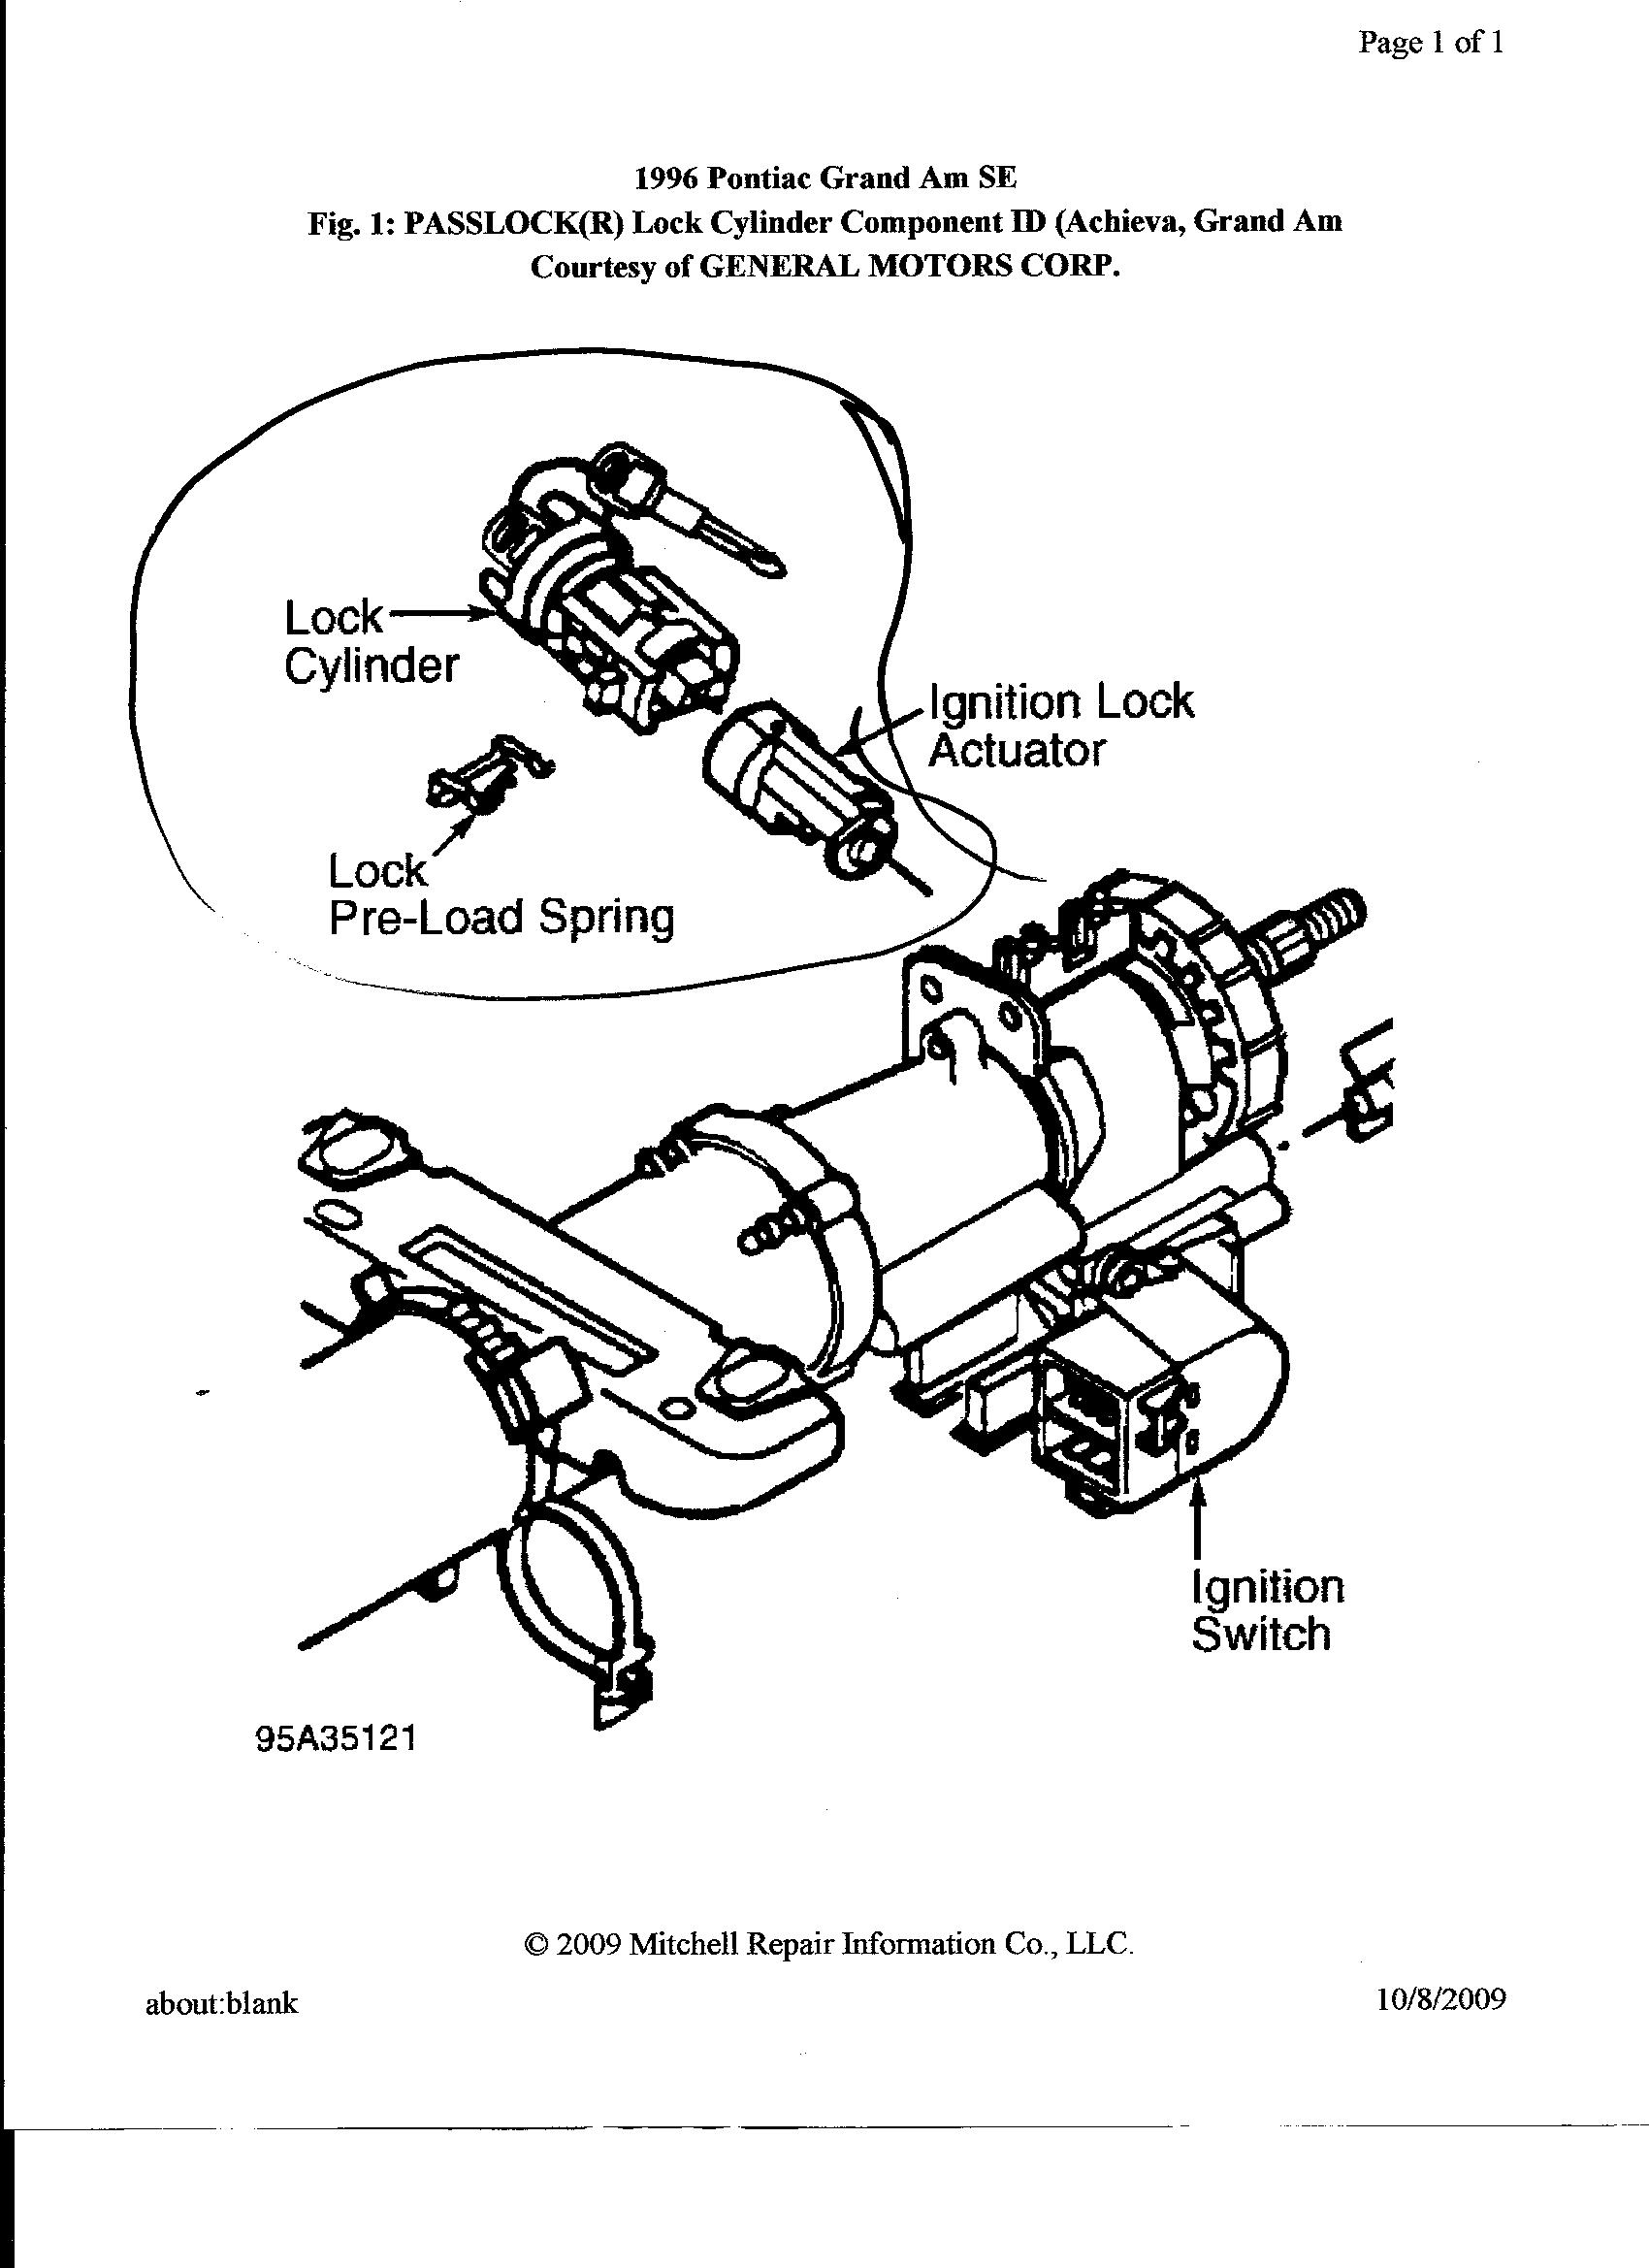 I Have A 1996 Pontiac Grand Am Gt With A 3 1 Liter Engine I Left Home And Notice The The Theft Light Was On The All The